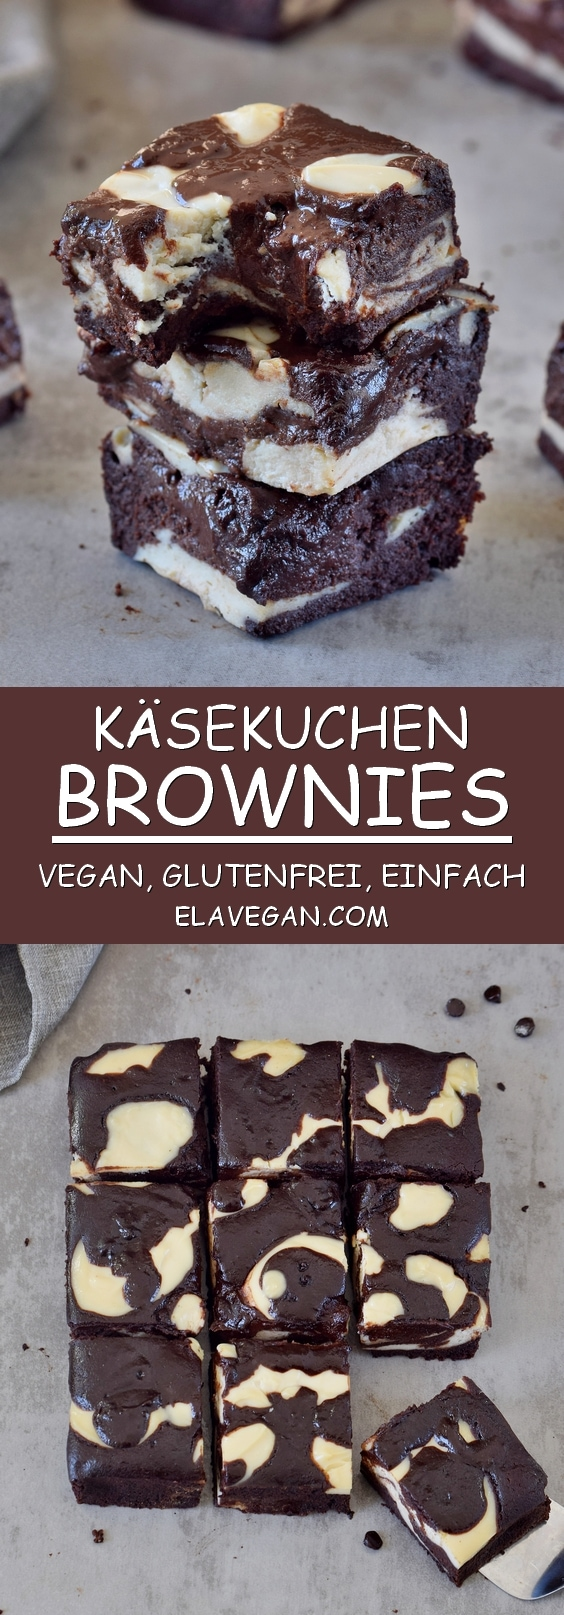 käsekuchen brownies vegan glutenfrei einfach pinterest collage